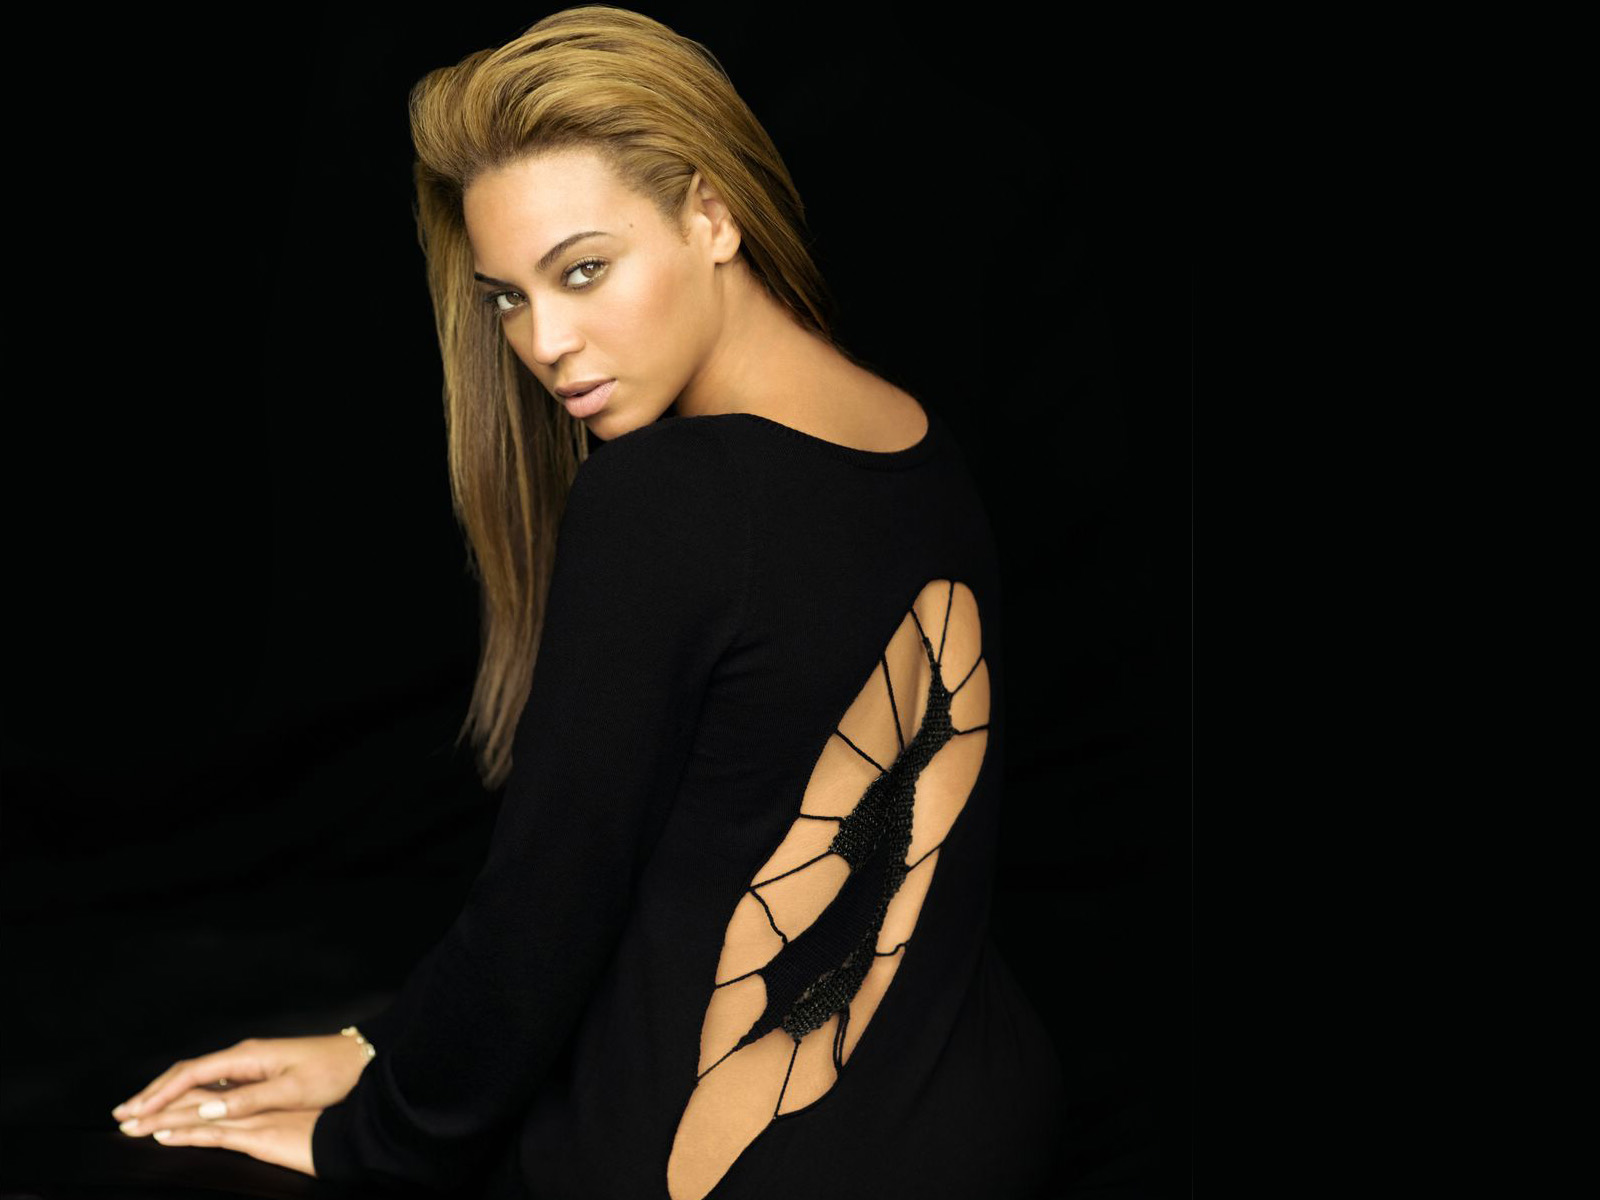 beyonce hot naked photos